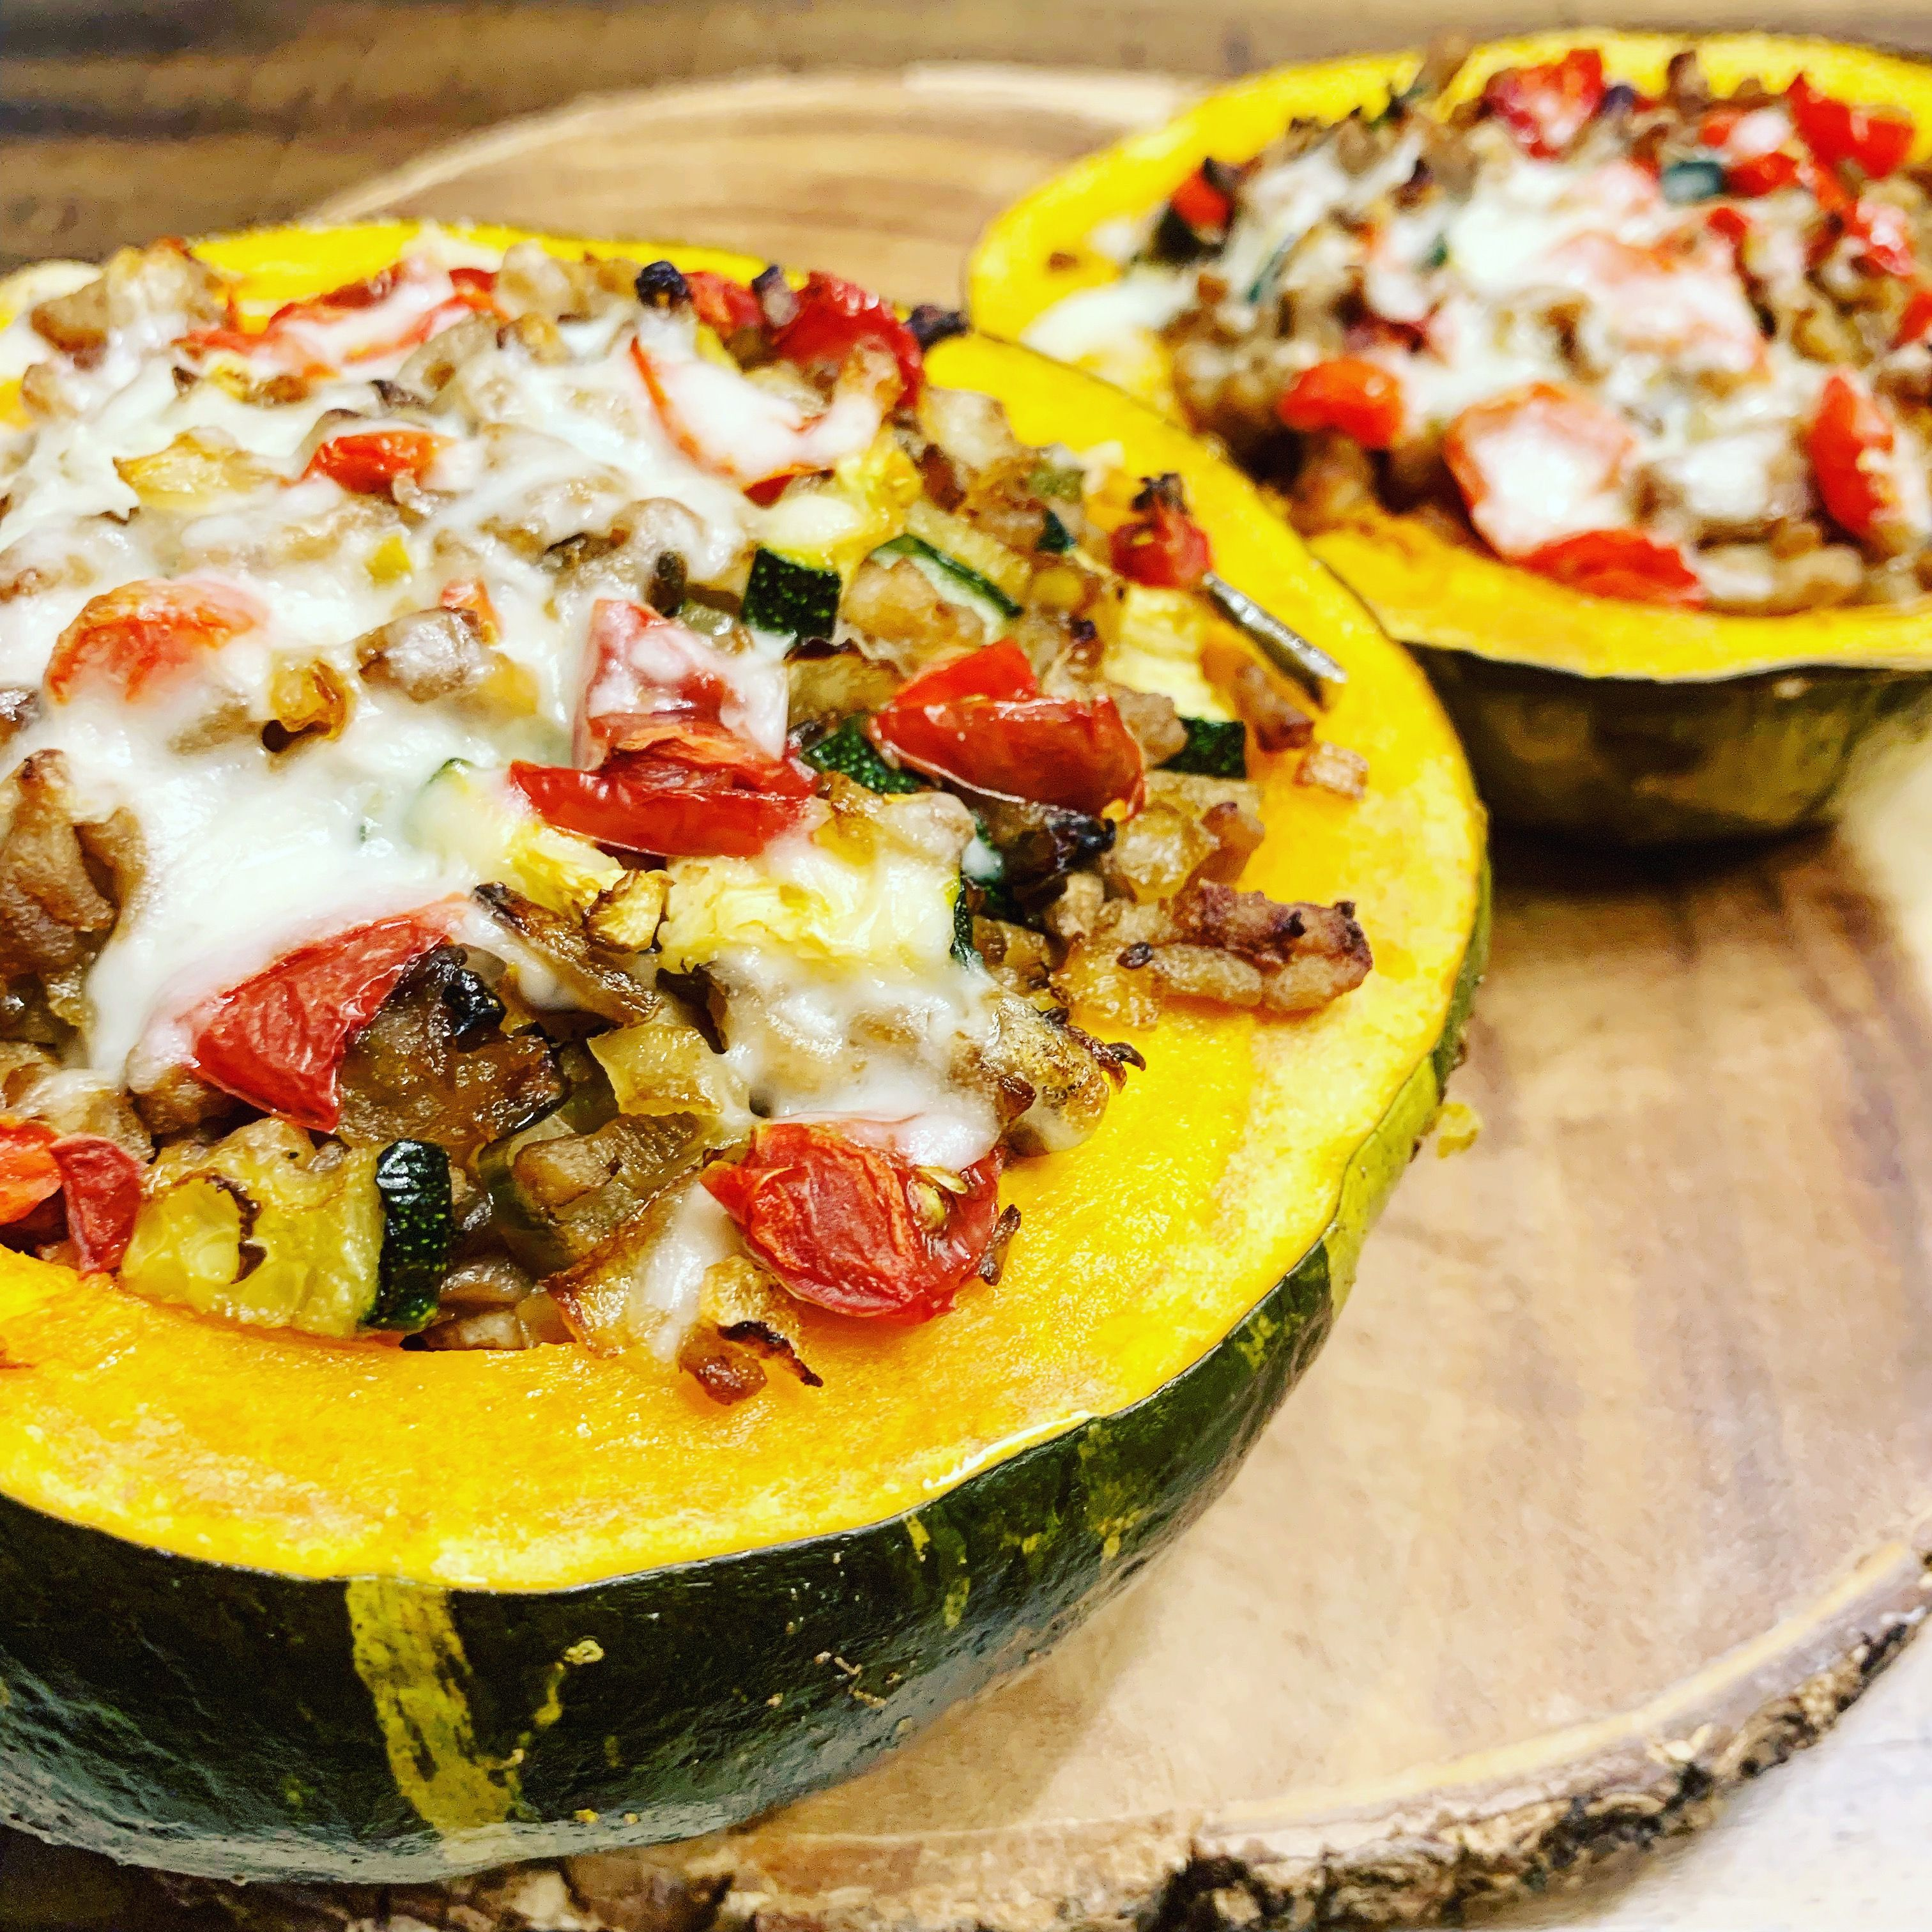 Just In Time For Fall Stuffed Roasted Buttercup Squash Oh Sooooo Delicious Stuffedsquash Stuffedbutter Buttercup Squash Healthy Recipes Healthy Eating